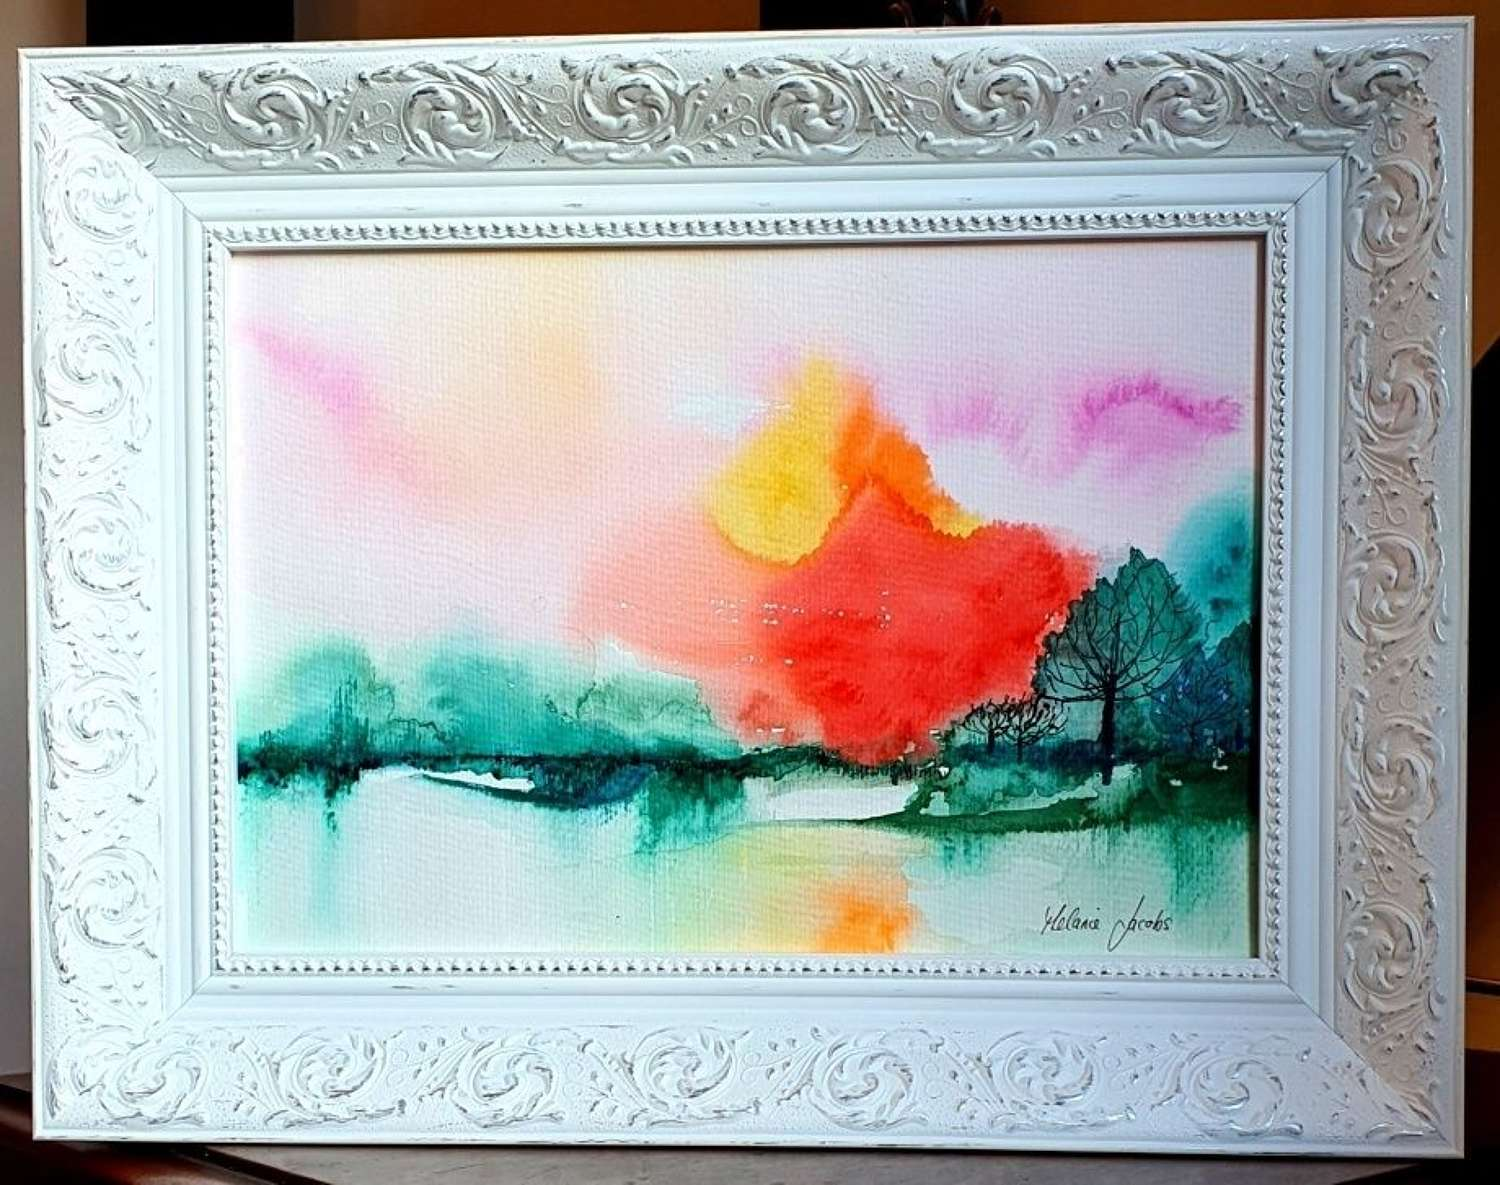 'Love, Hope And Happiness' - Original Watercolour By Melanie Jacobs